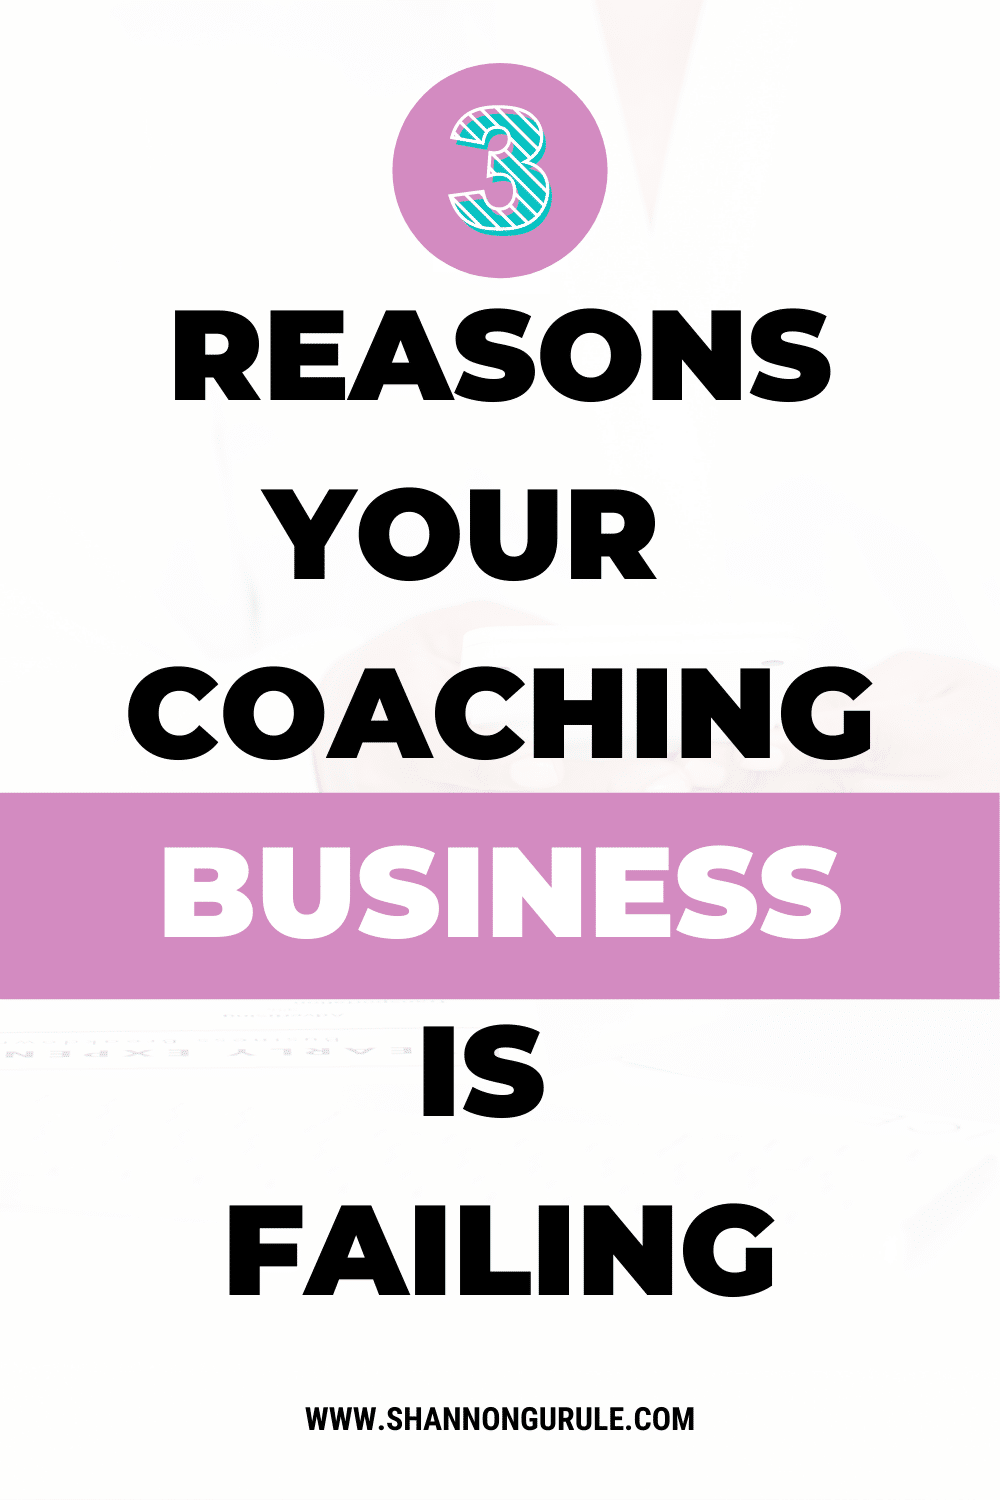 3 Reasons Your Coaching Business Is Failing